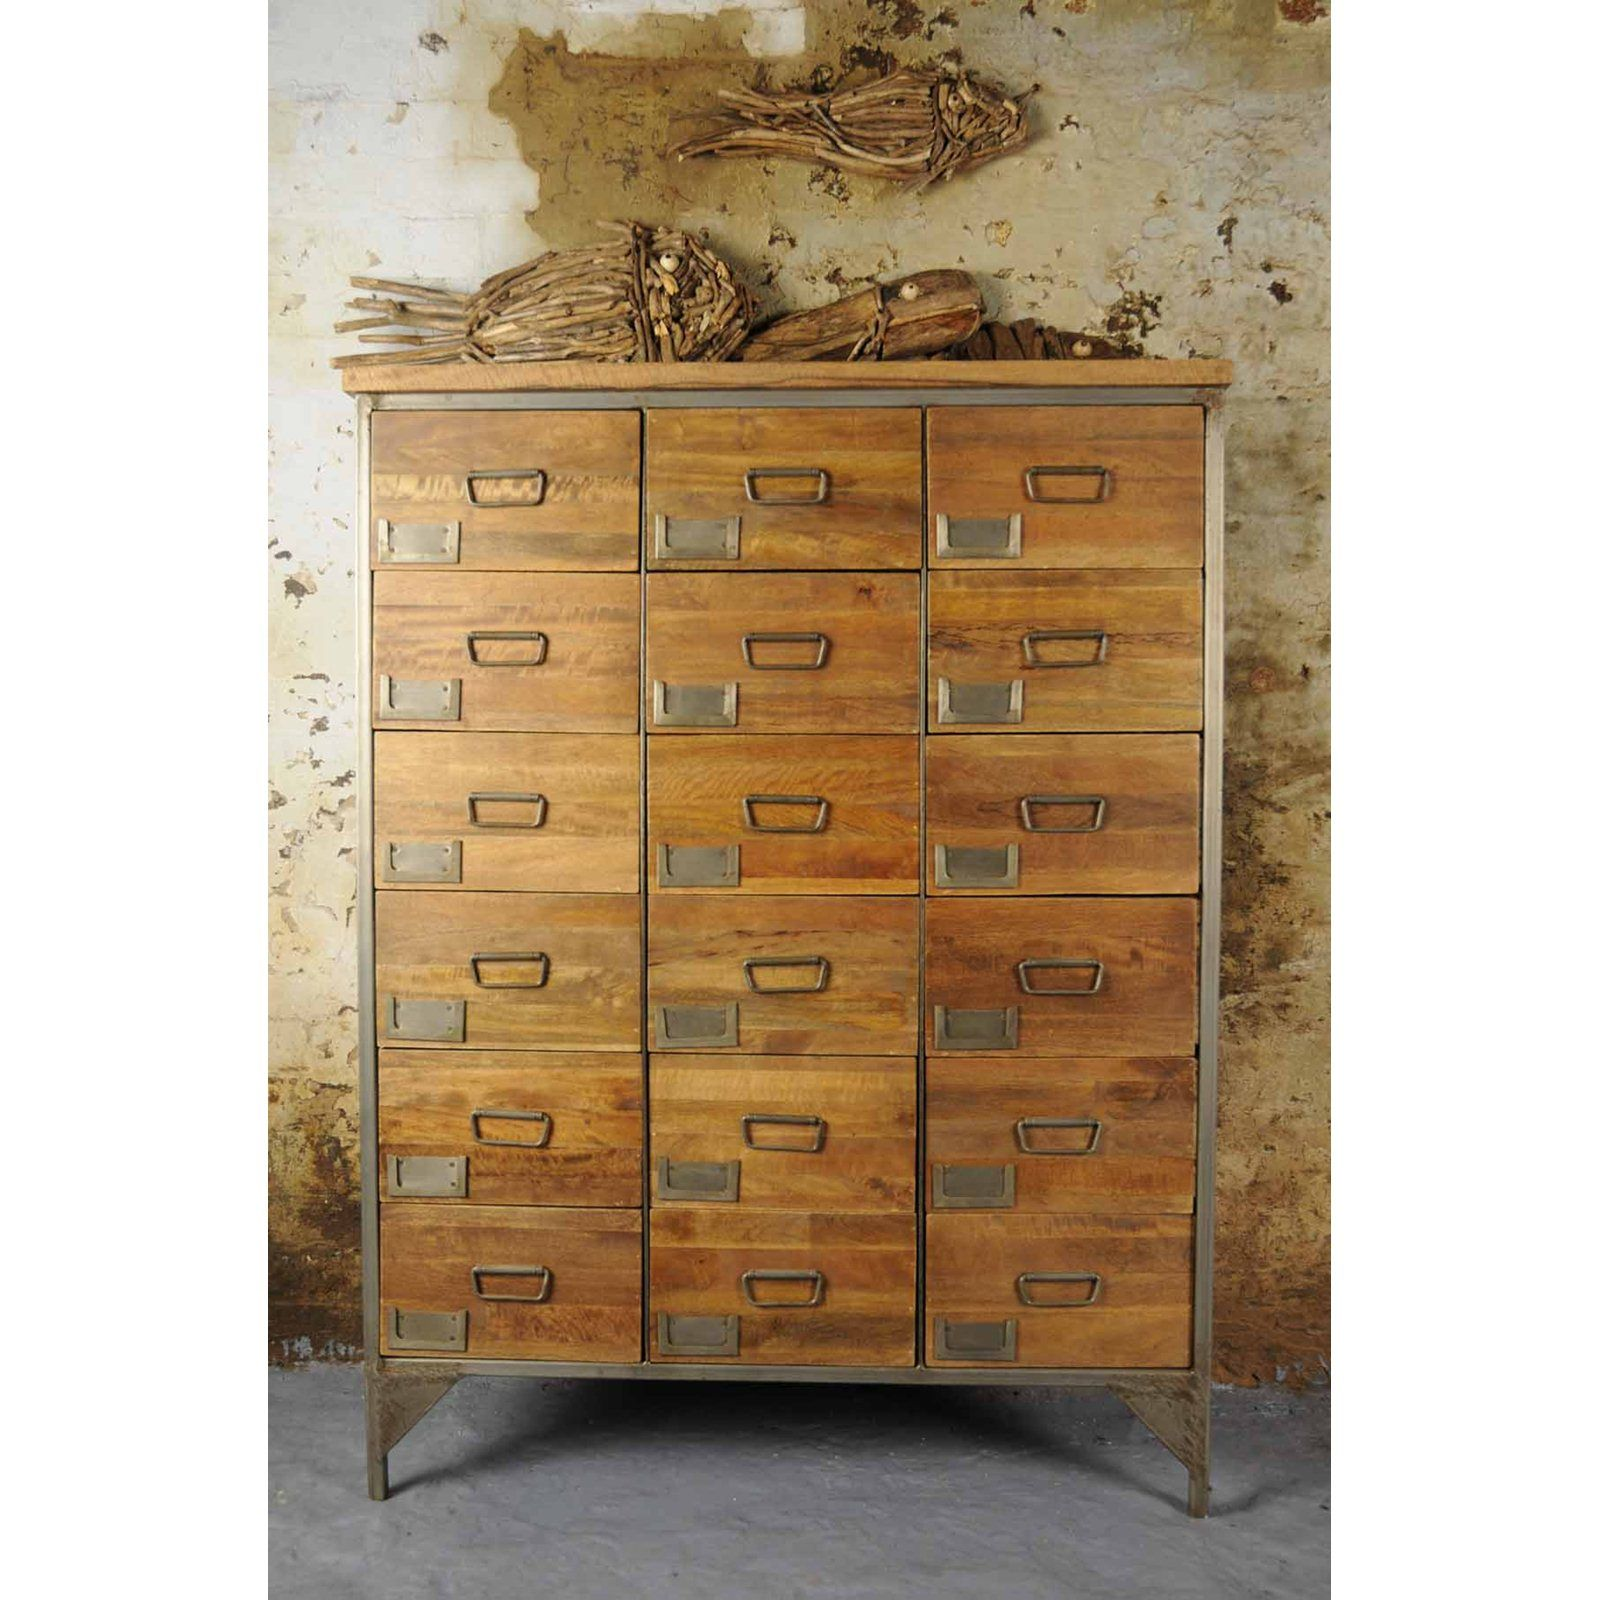 HICKS and HICKS Industrial Apothecary Chest Hicks u Hicks be